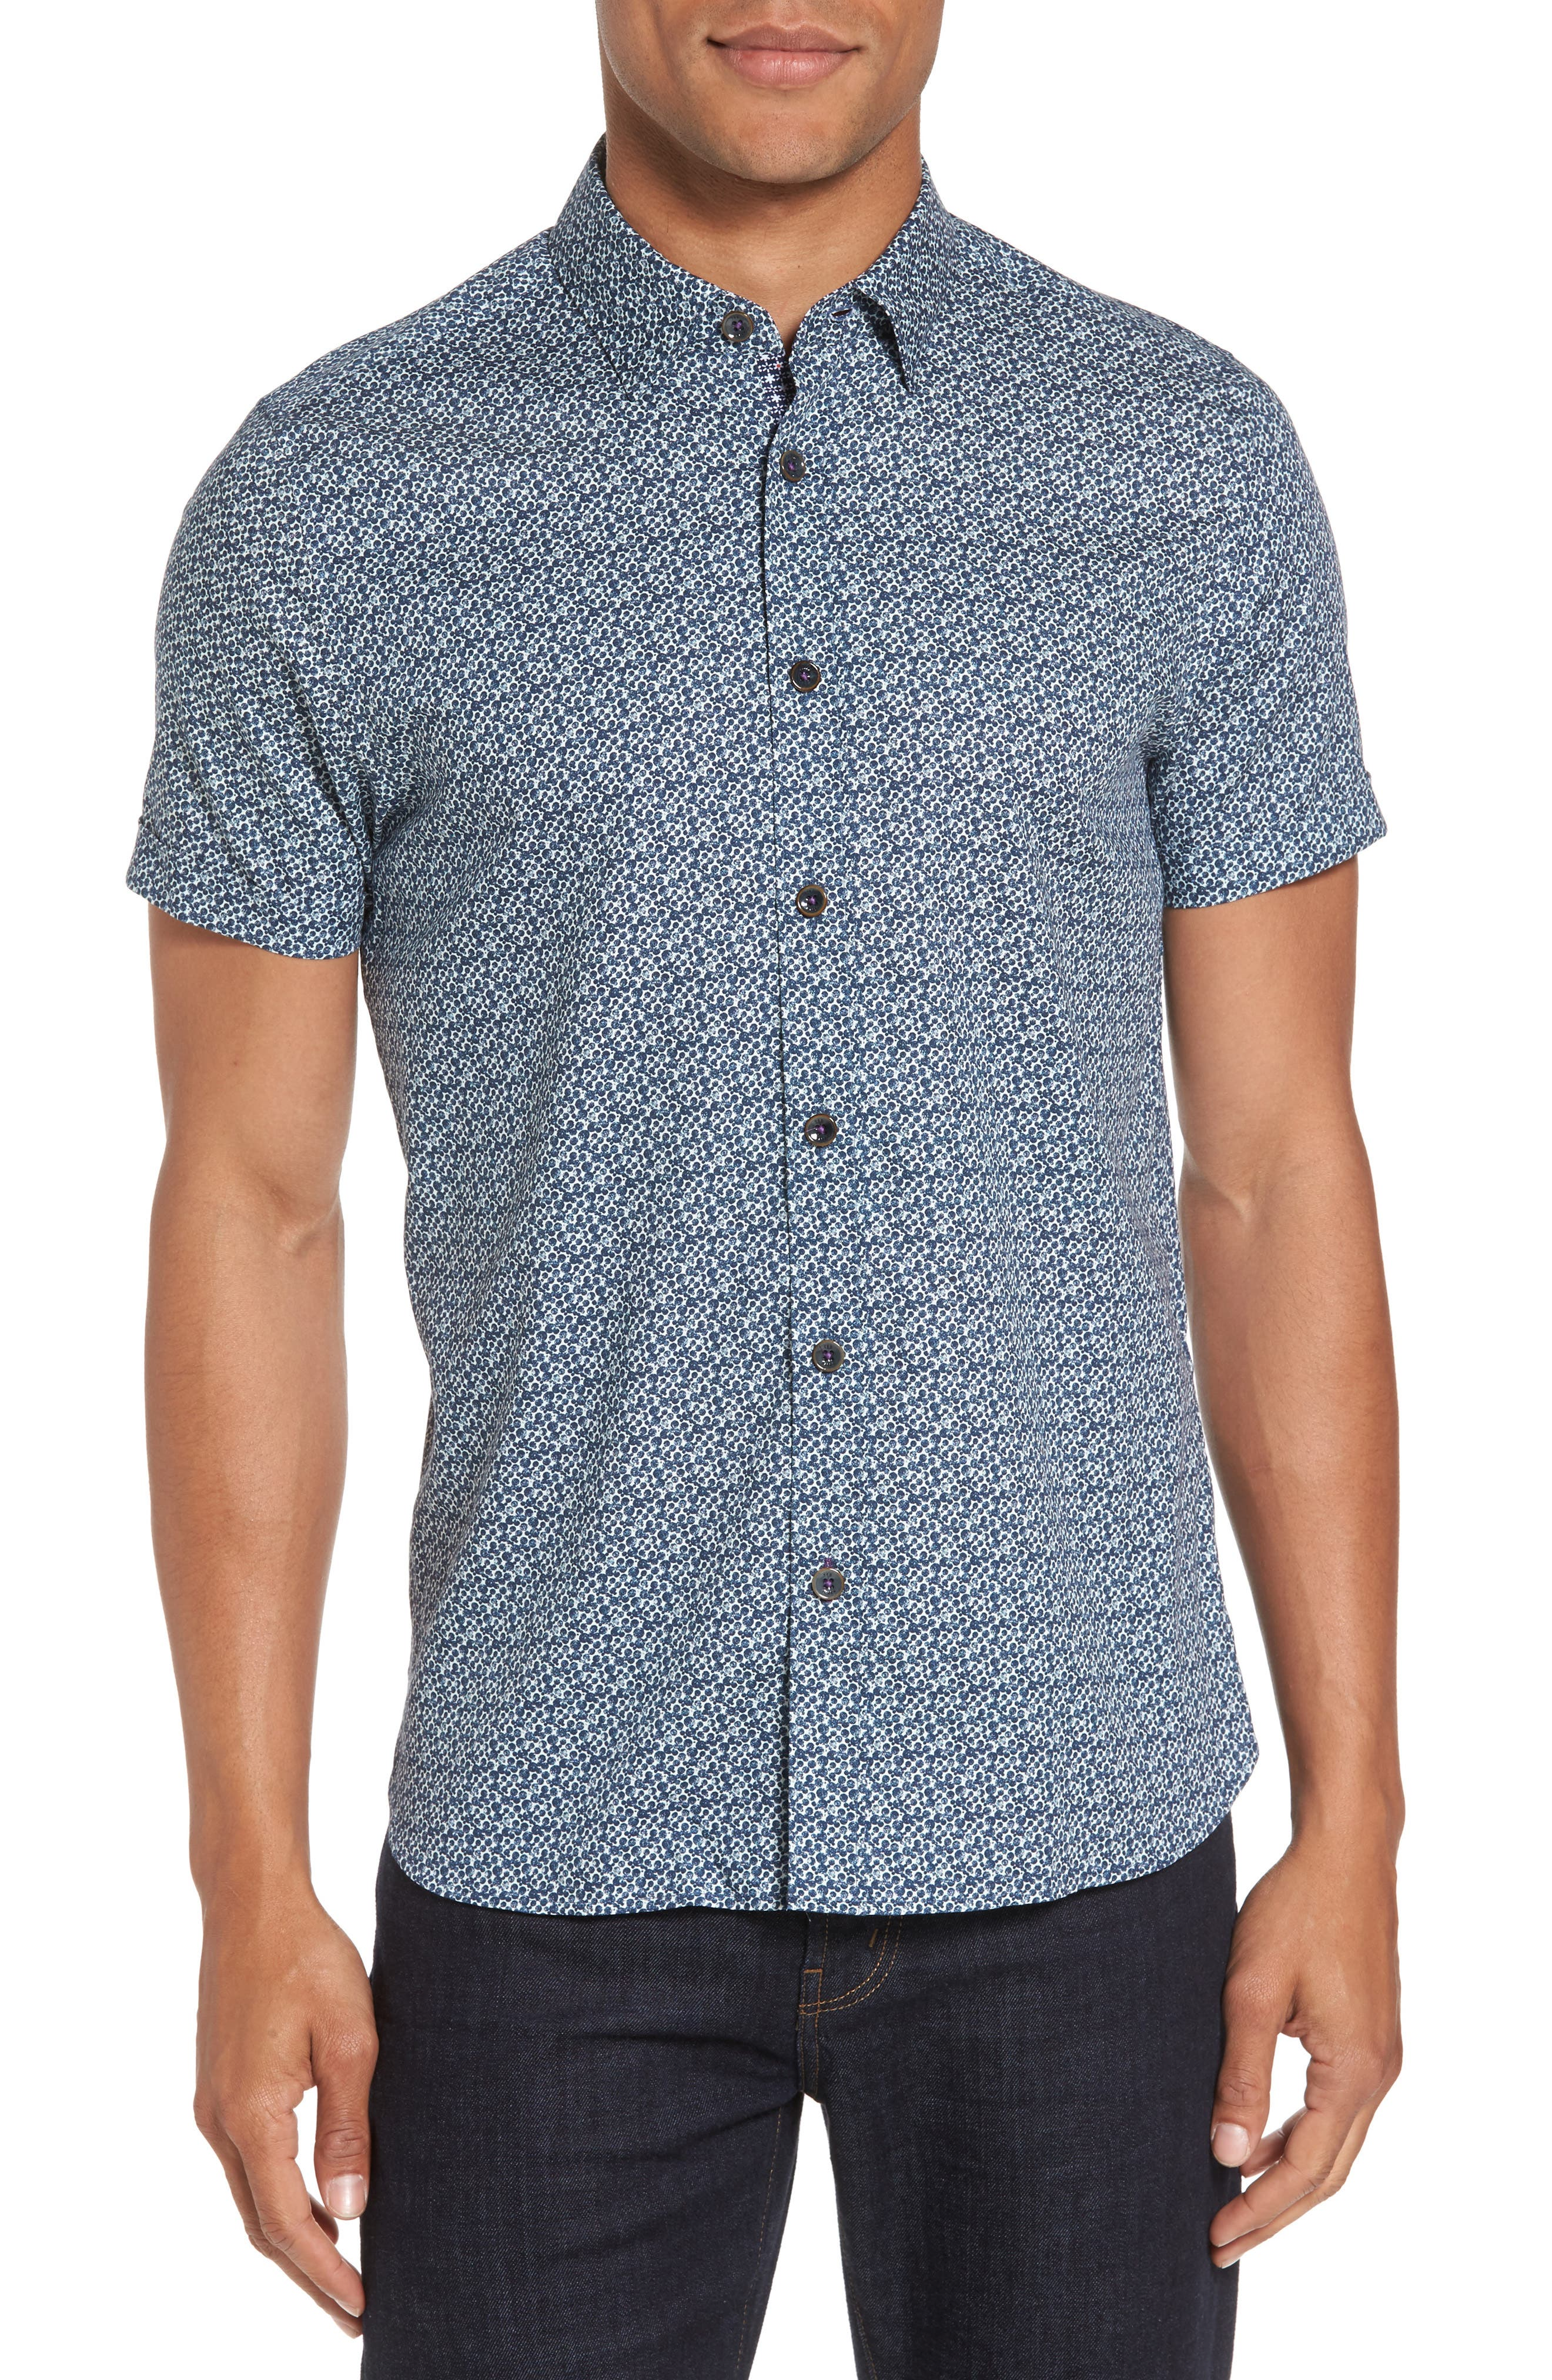 Alternate Image 1 Selected - Ted Baker London Bubbly Extra Slim Fit Print Sport Shirt